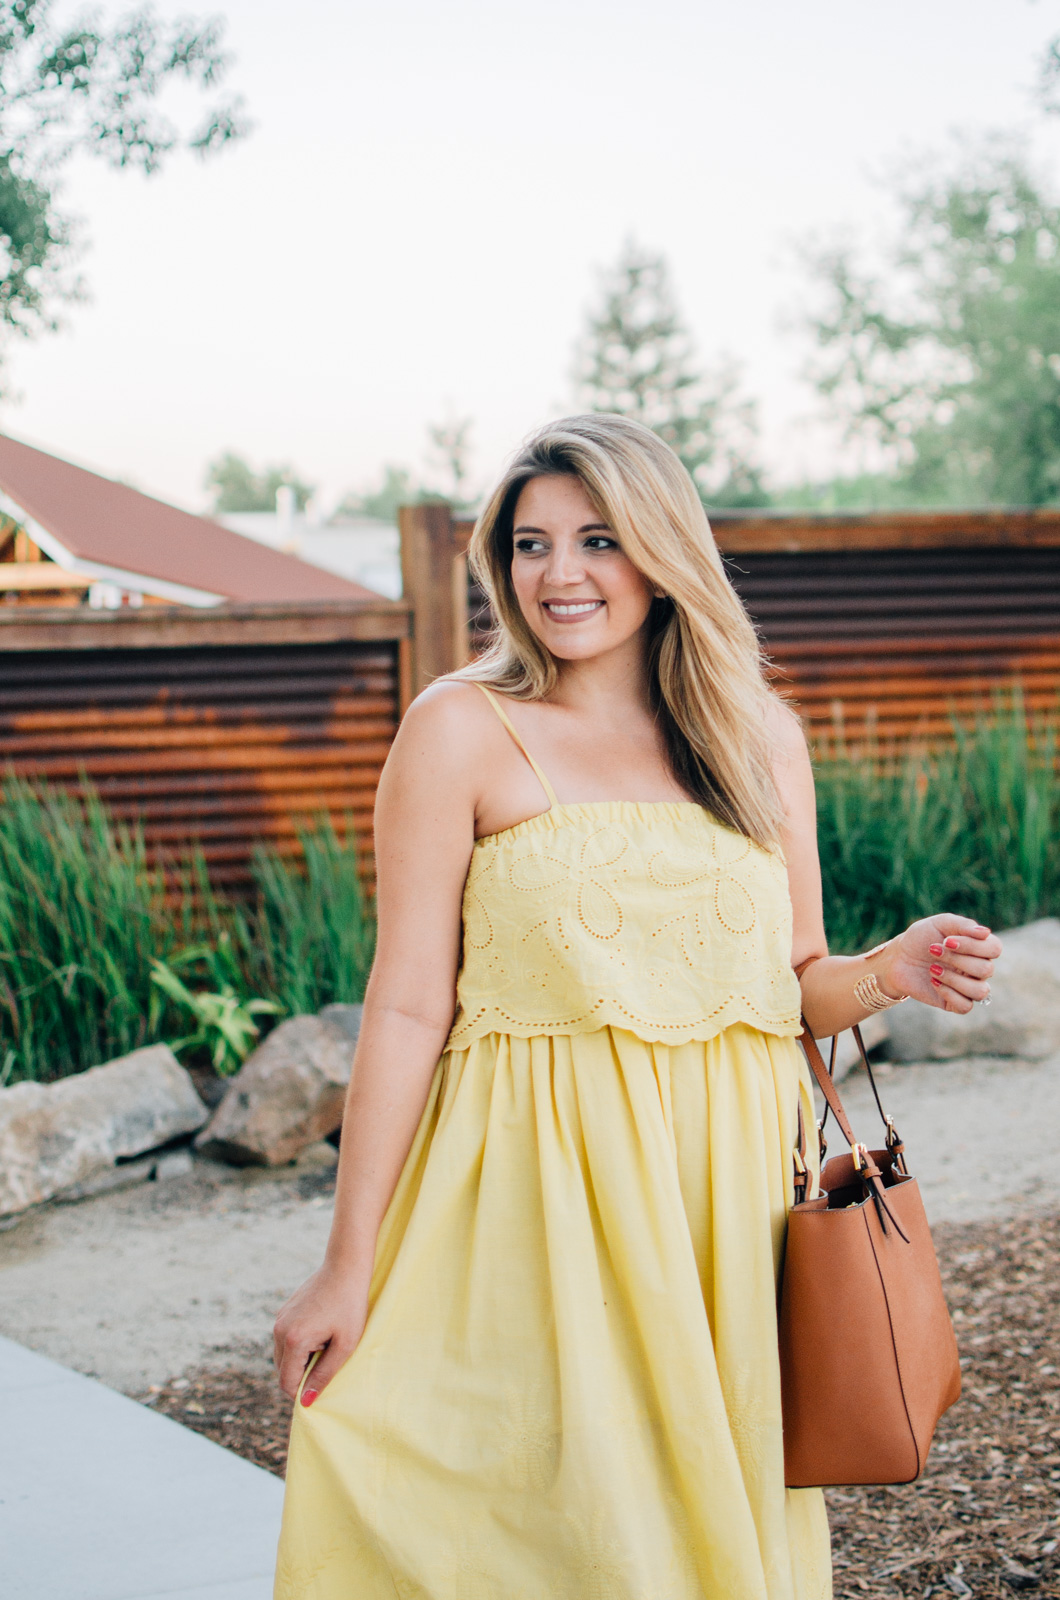 summer outfits sundress - yellow midi sundress | More Summer outfit ideas at bylaurenm.com